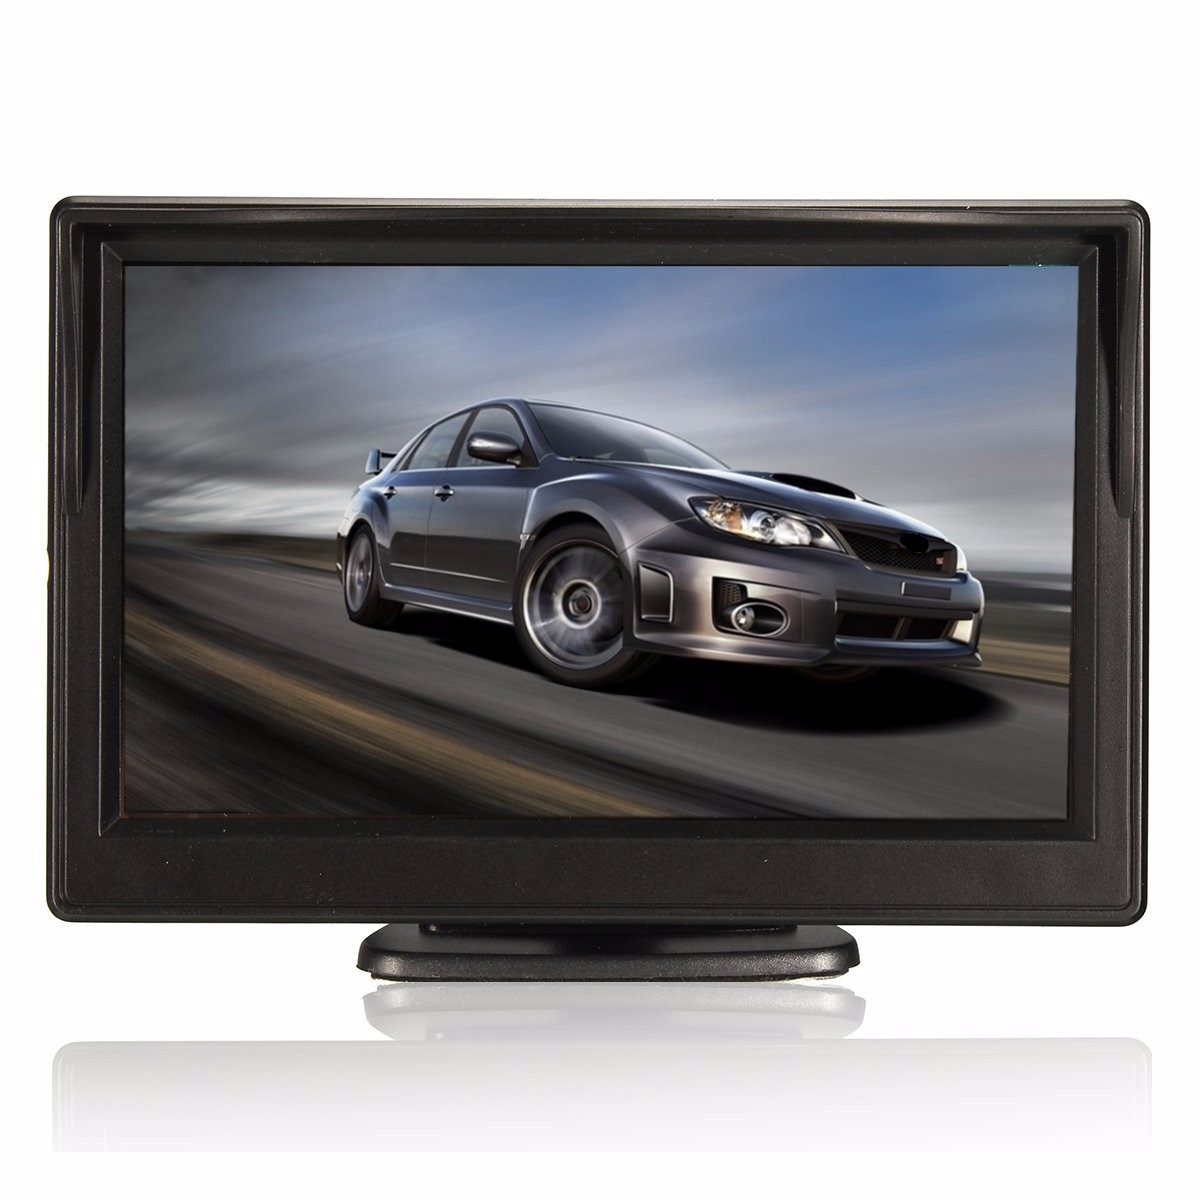 Universal 5'' TFT LCD Display Car Monitor Waterproof Night Vision Reversing Backup Display VCR DVD High Resolution HD Car Screen